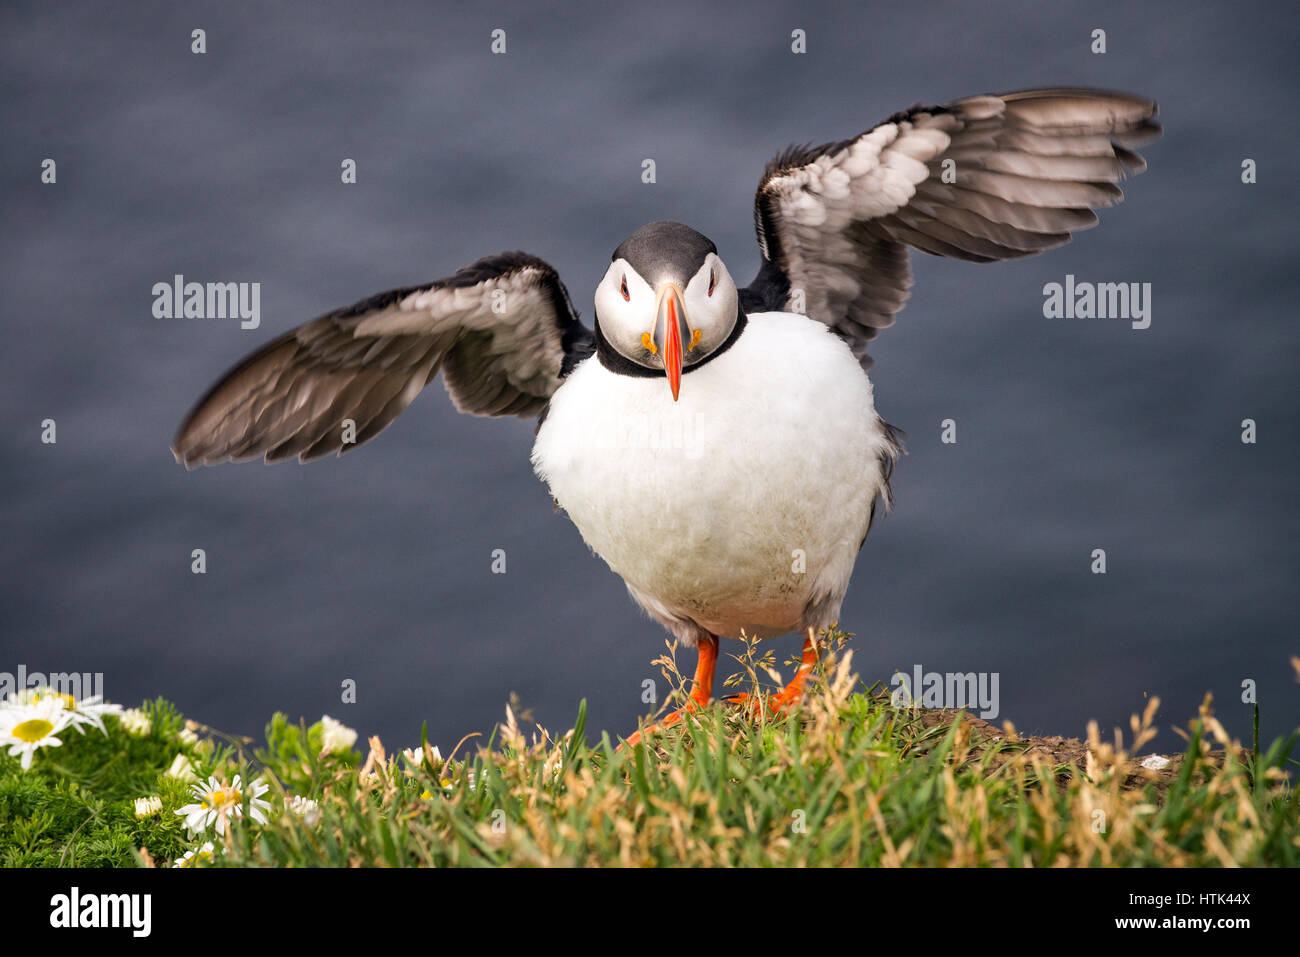 A plump and puffy puffin. - Stock Image